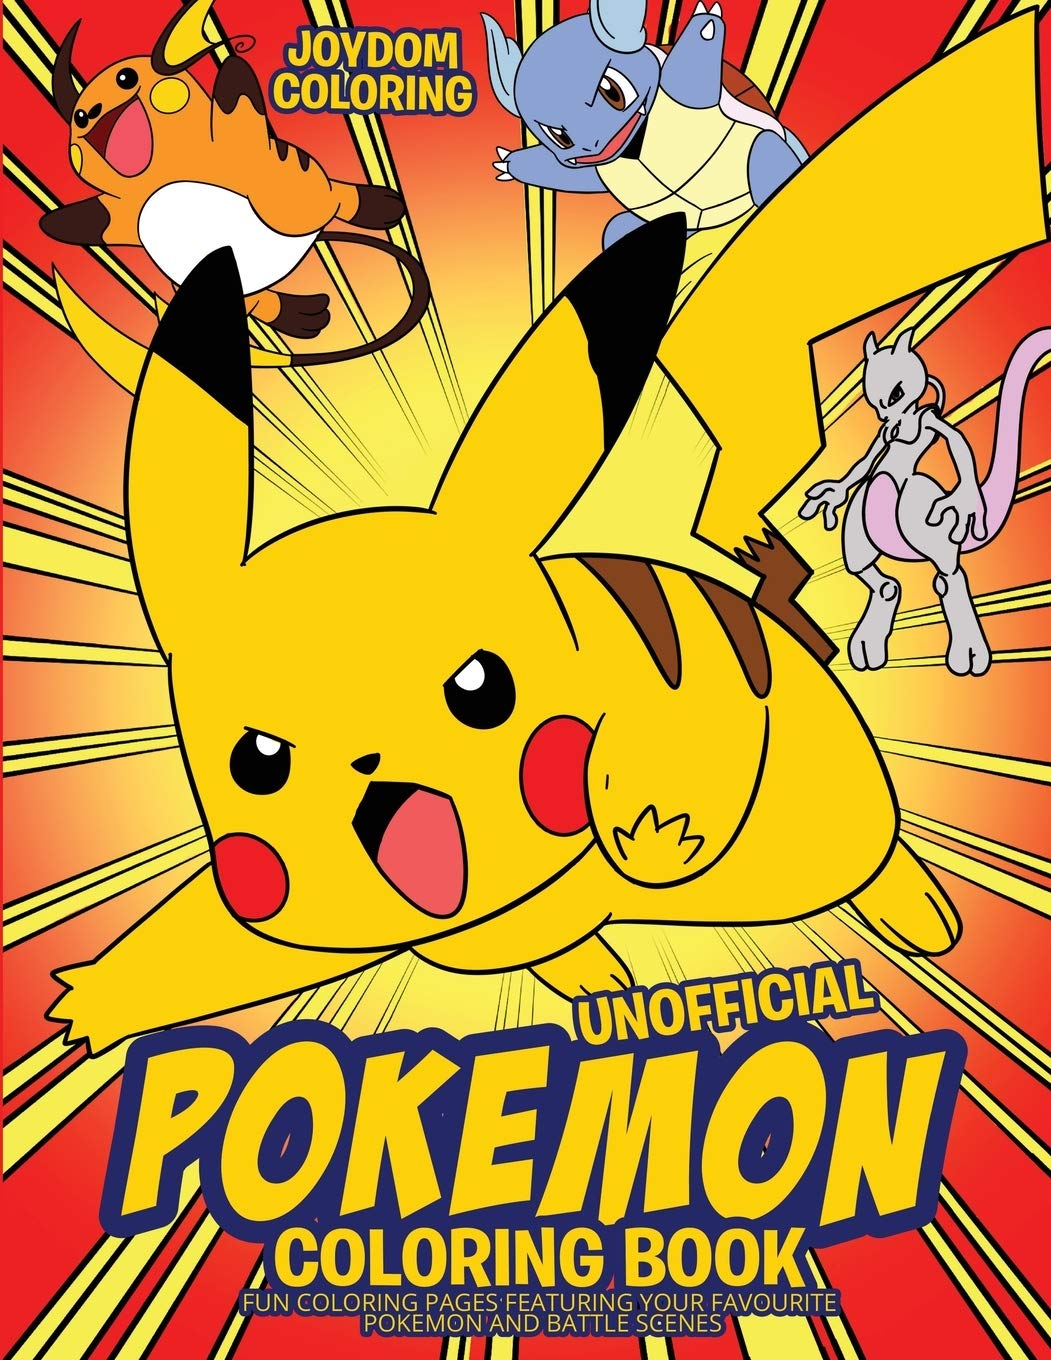 - Unofficial Pokemon Coloring Book: Fun Coloring Pages Featuring